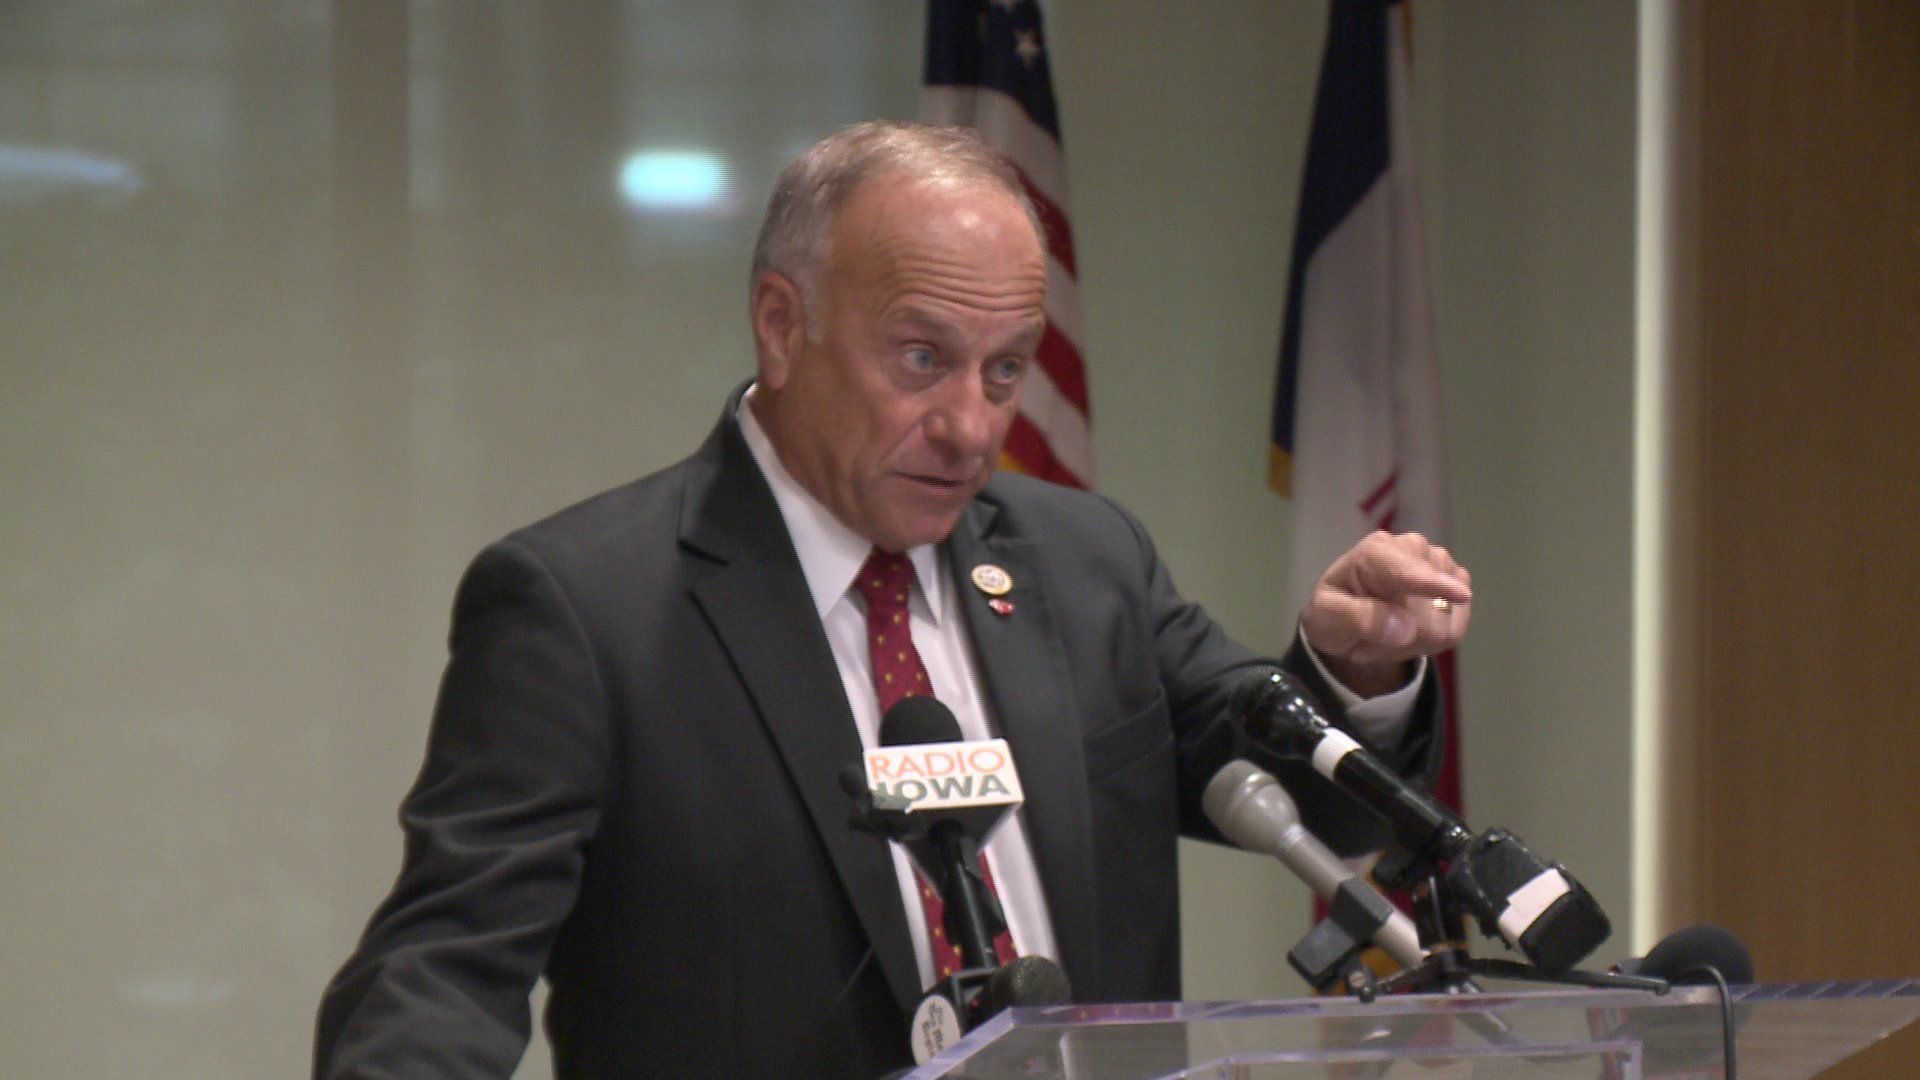 Congressman Steve King was taking questions at an event in Iowa on Thursday when a man compared the Republican to the shooter who killed 11 people at a Pittsburgh synagogue and asked if he was a white nationalist.